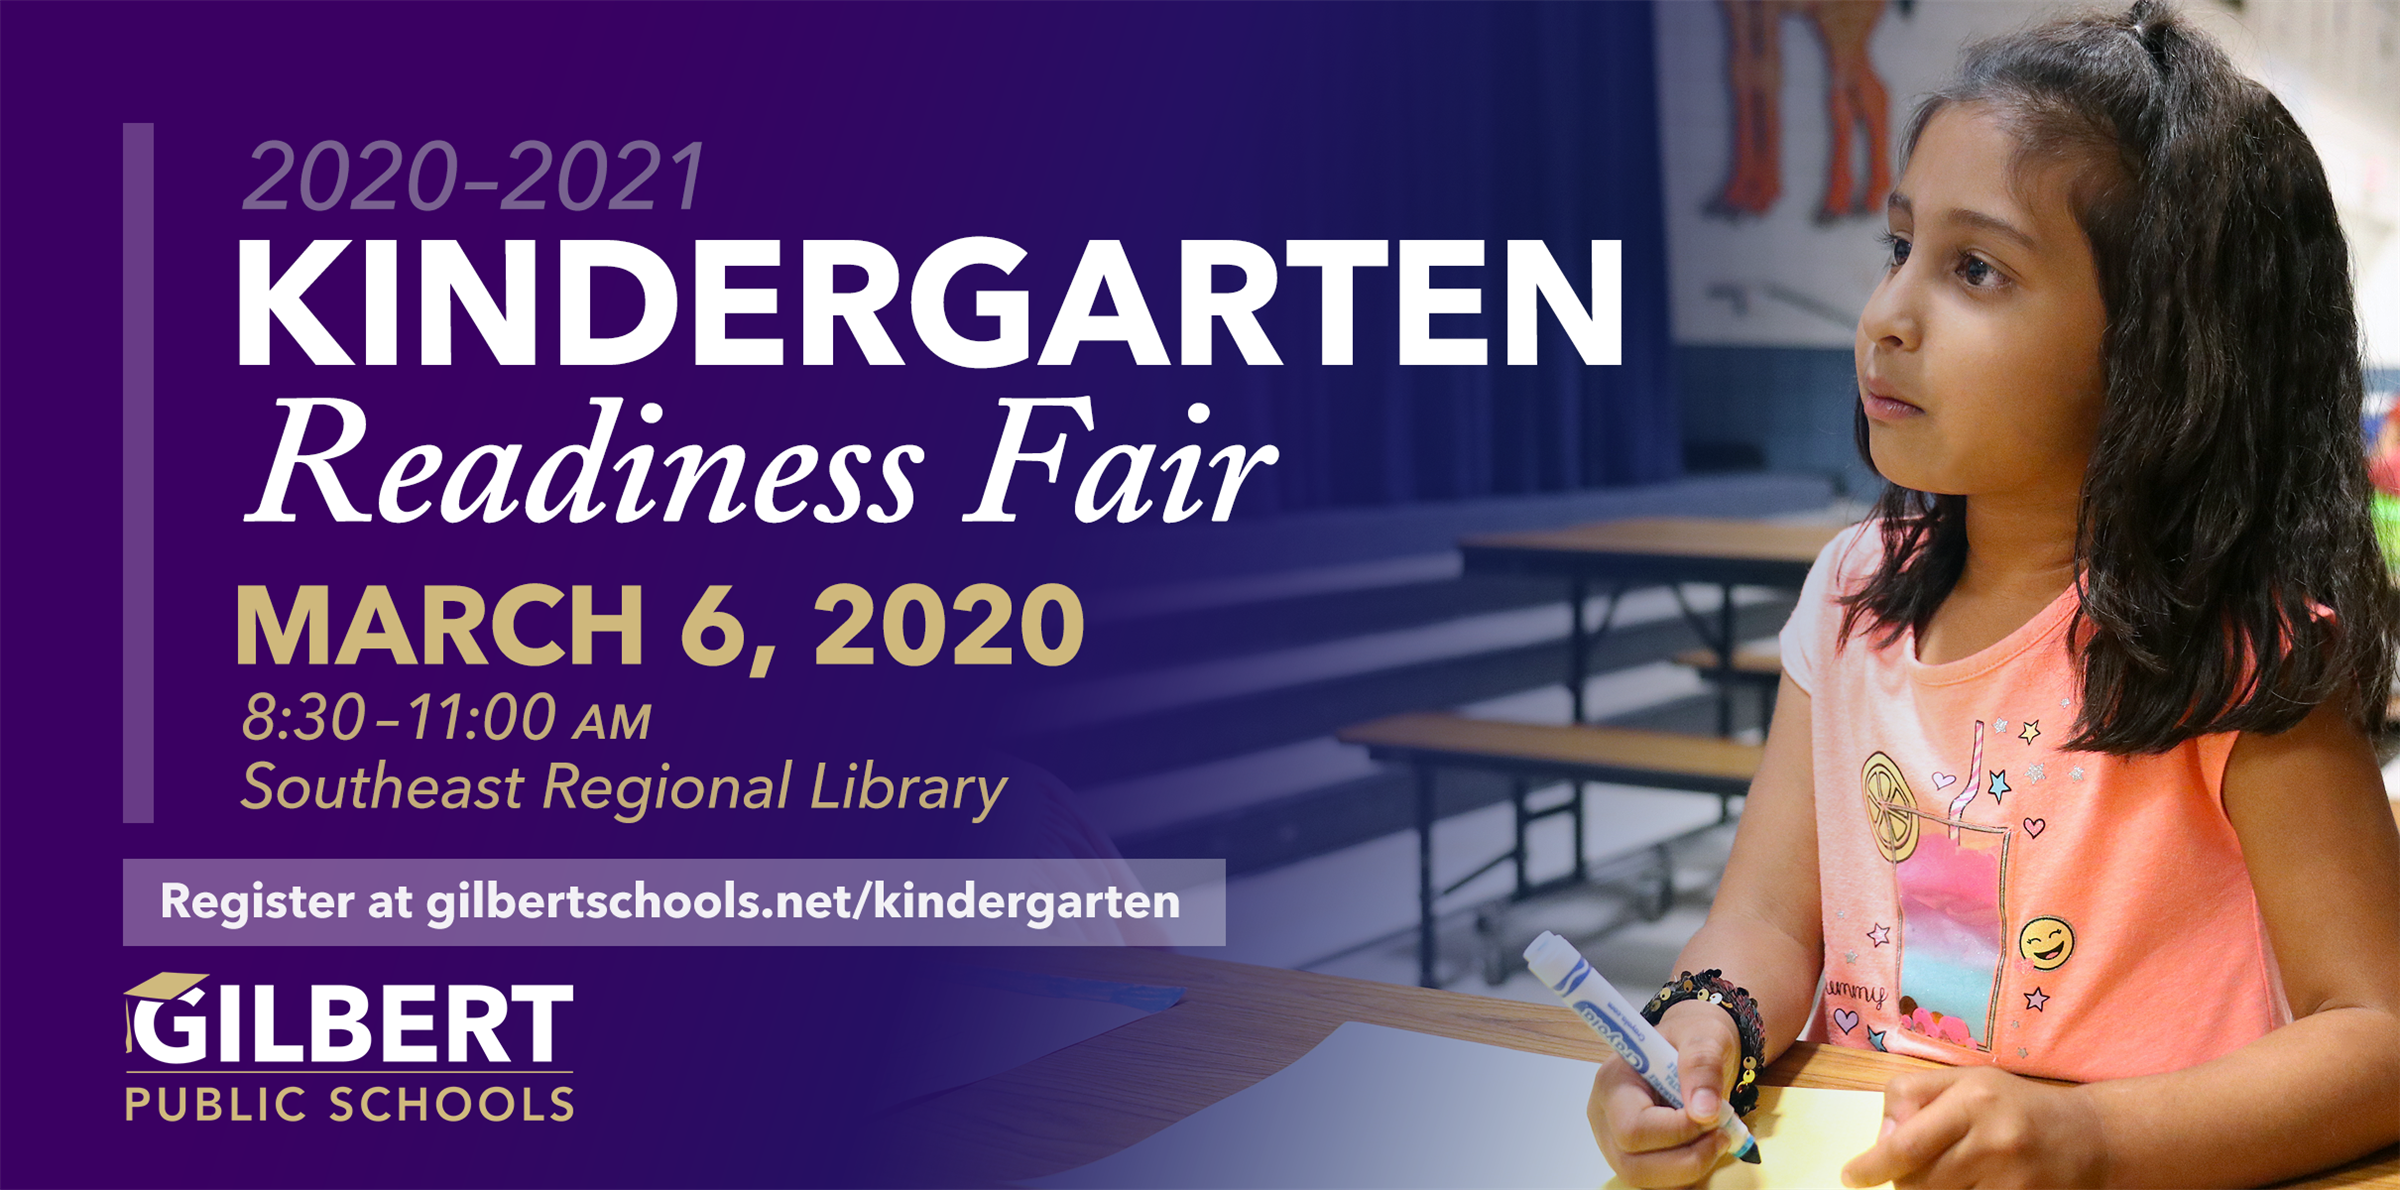 Kindergarten Readiness Fair -March 6, 2020 from 8:30–11:00 a.m. at Southeast Regional Library, Gilbert AZ